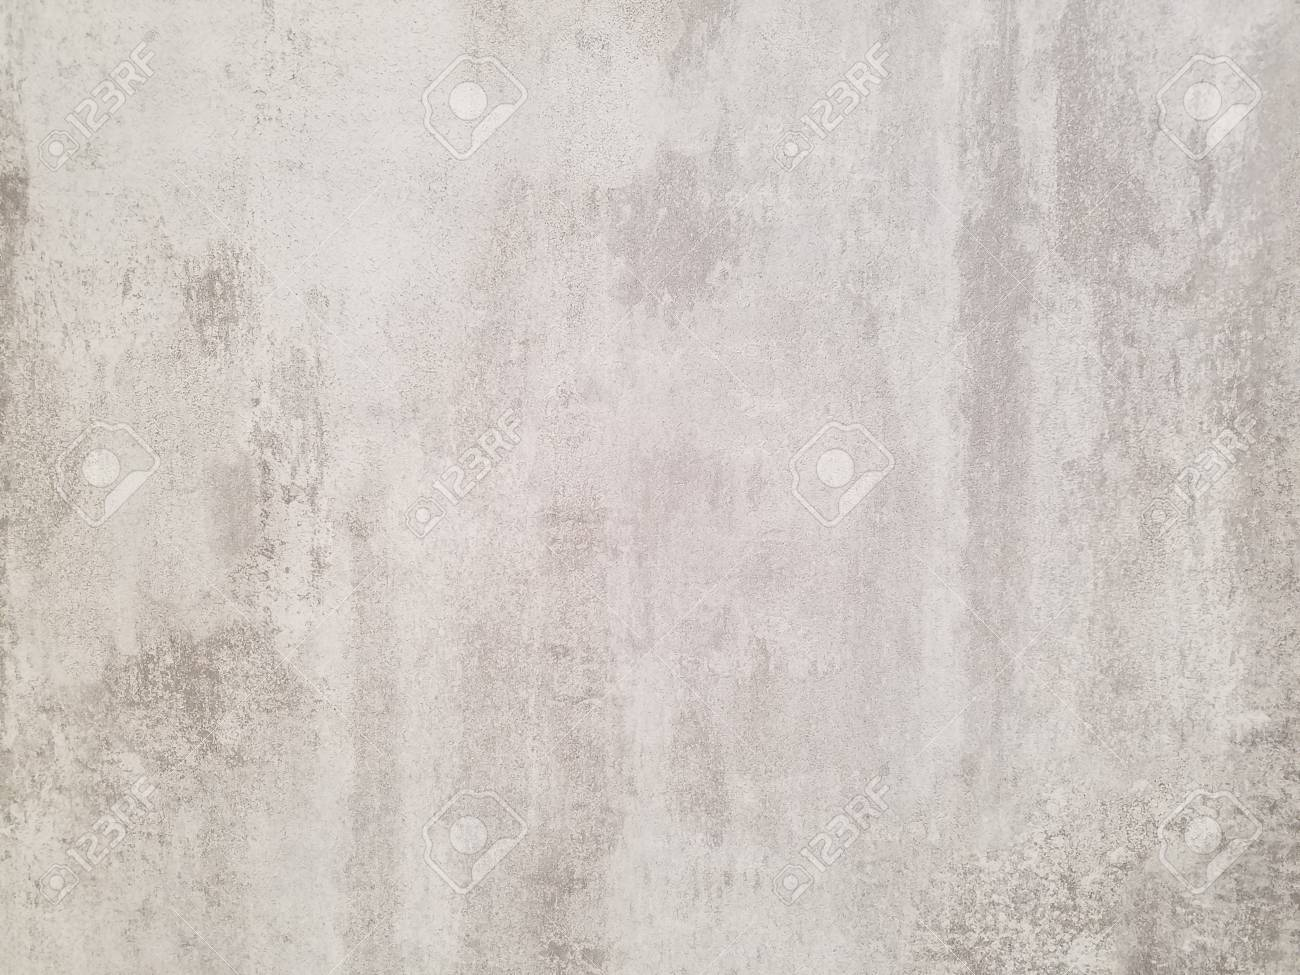 Cement Beton Urban Beton Texture Grunge Cement Background For Your Design